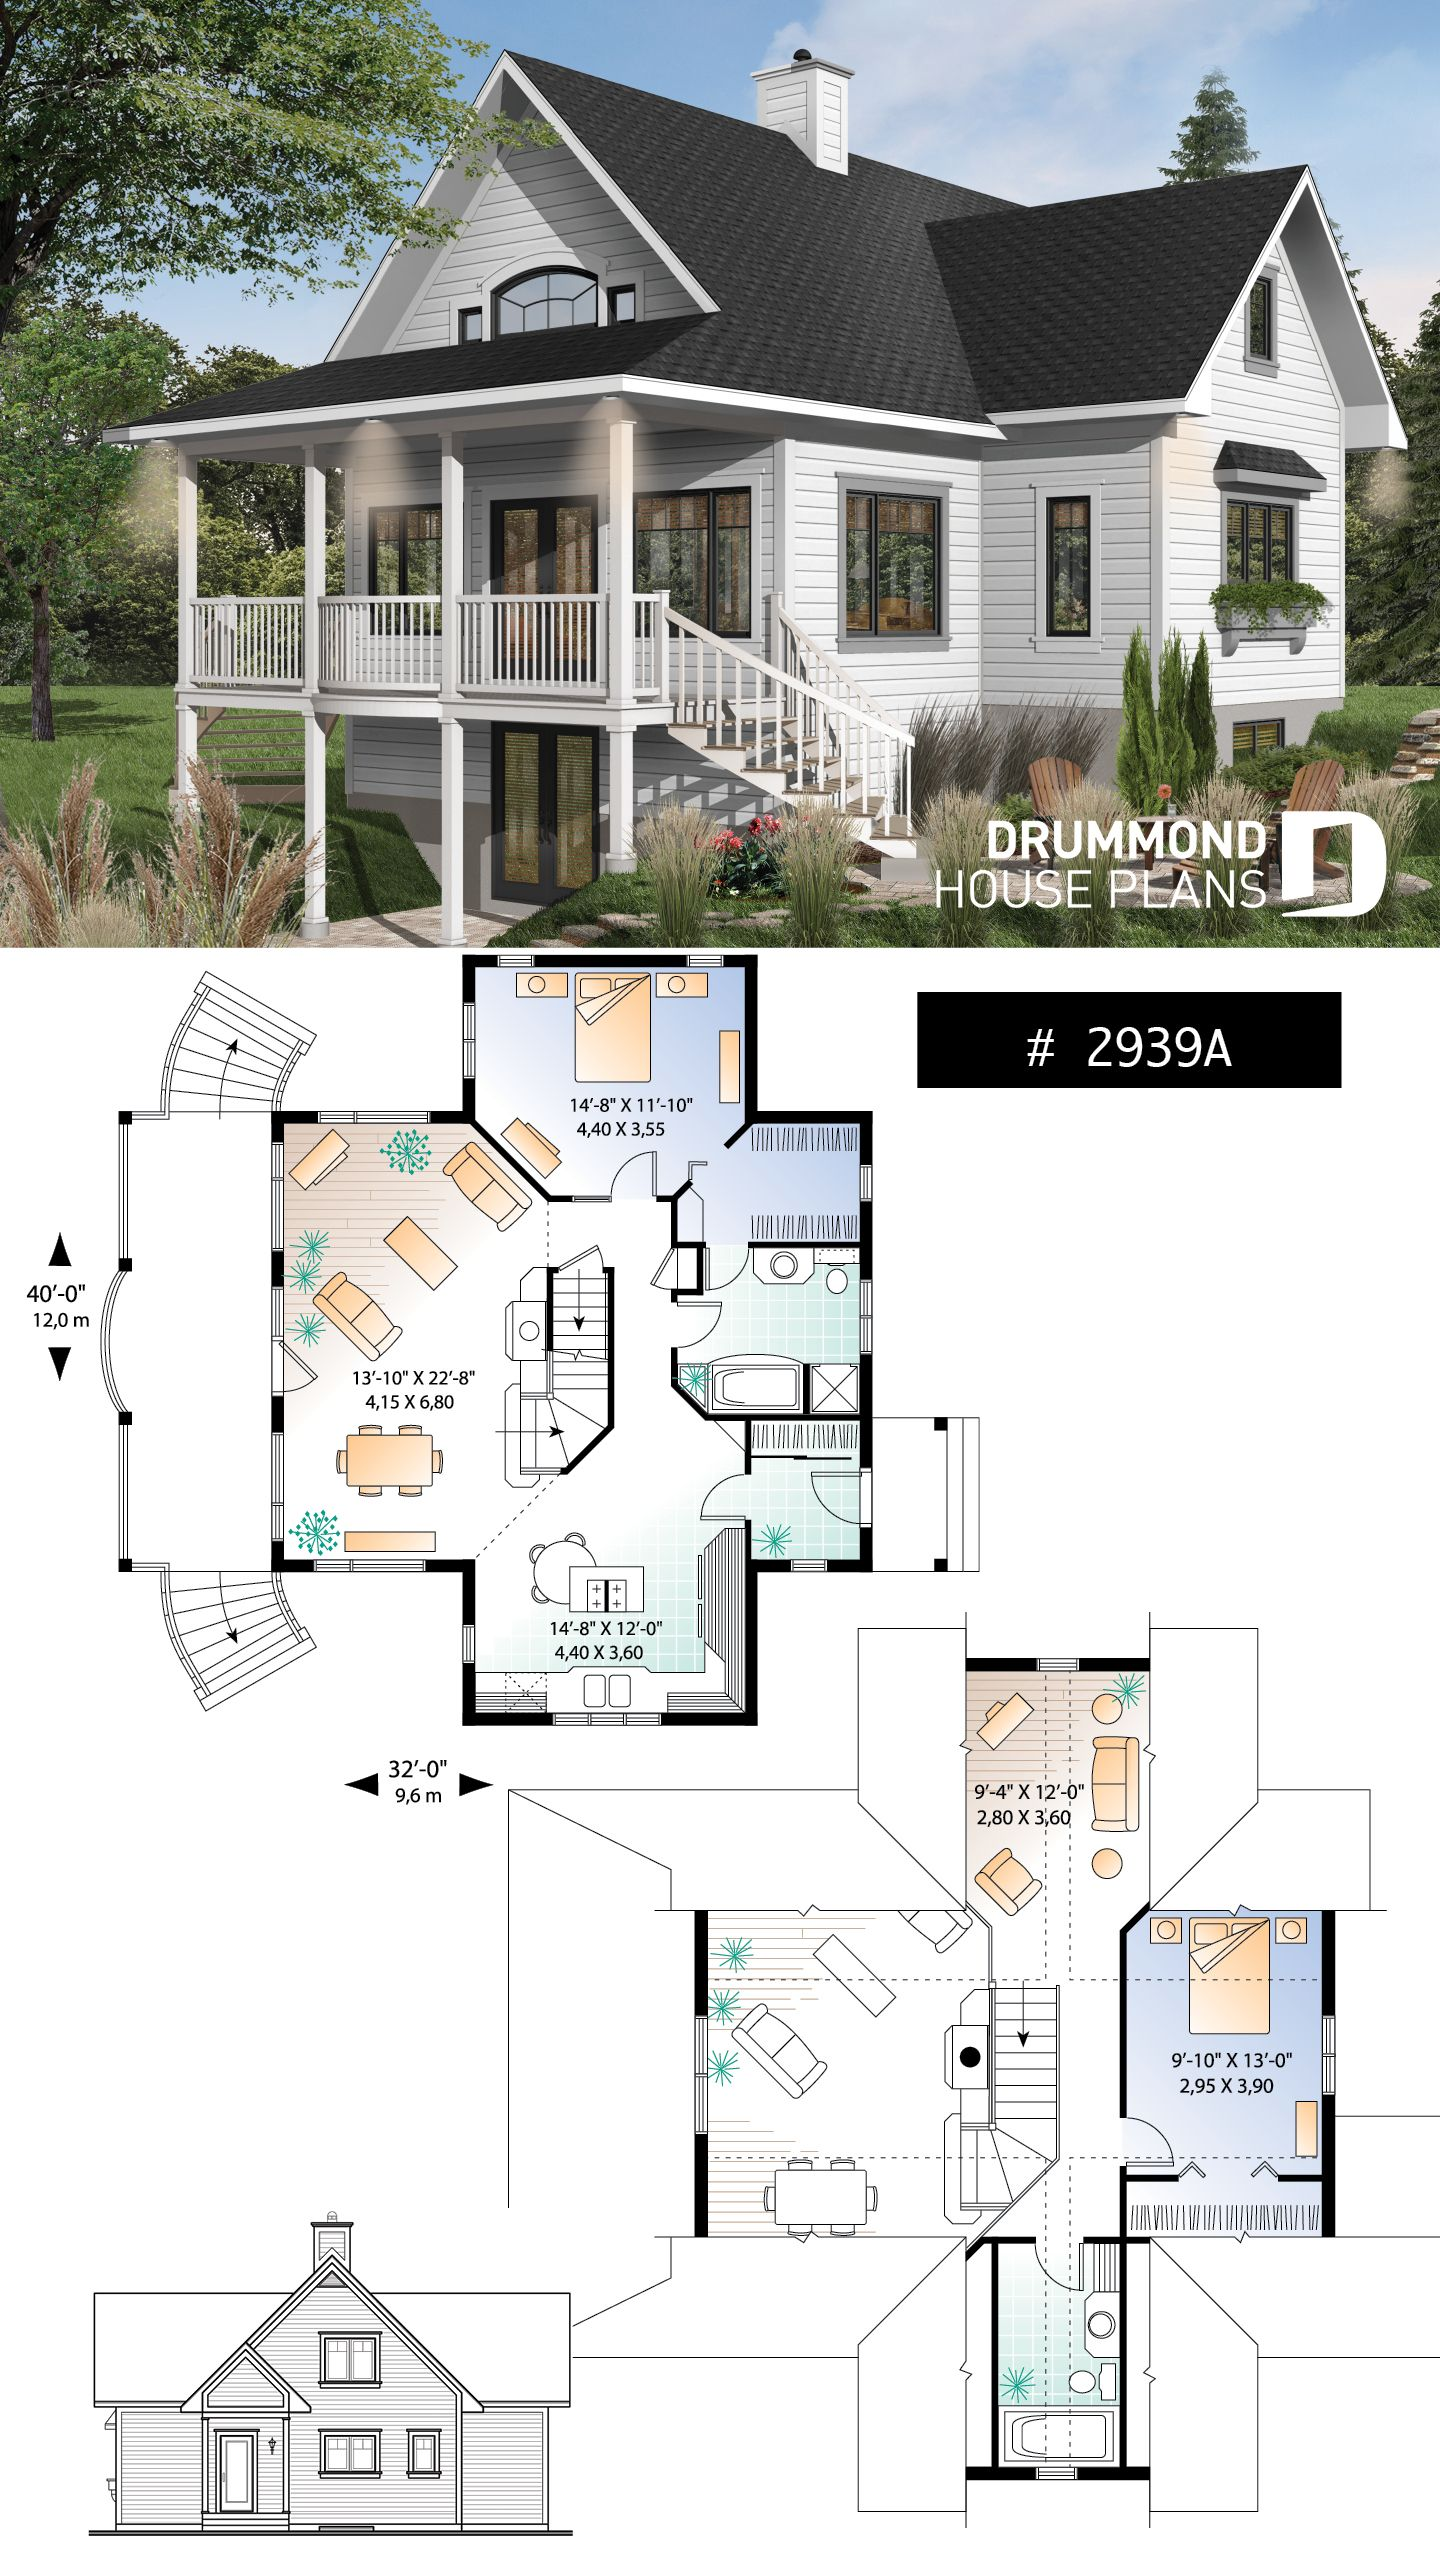 Spectacular Modern Farmhouse Plan With Walkout Basement 4 5 Bedroom Perfect Lakefront Home P Bungalow House Plans Craftsman House Plans House Plans Farmhouse